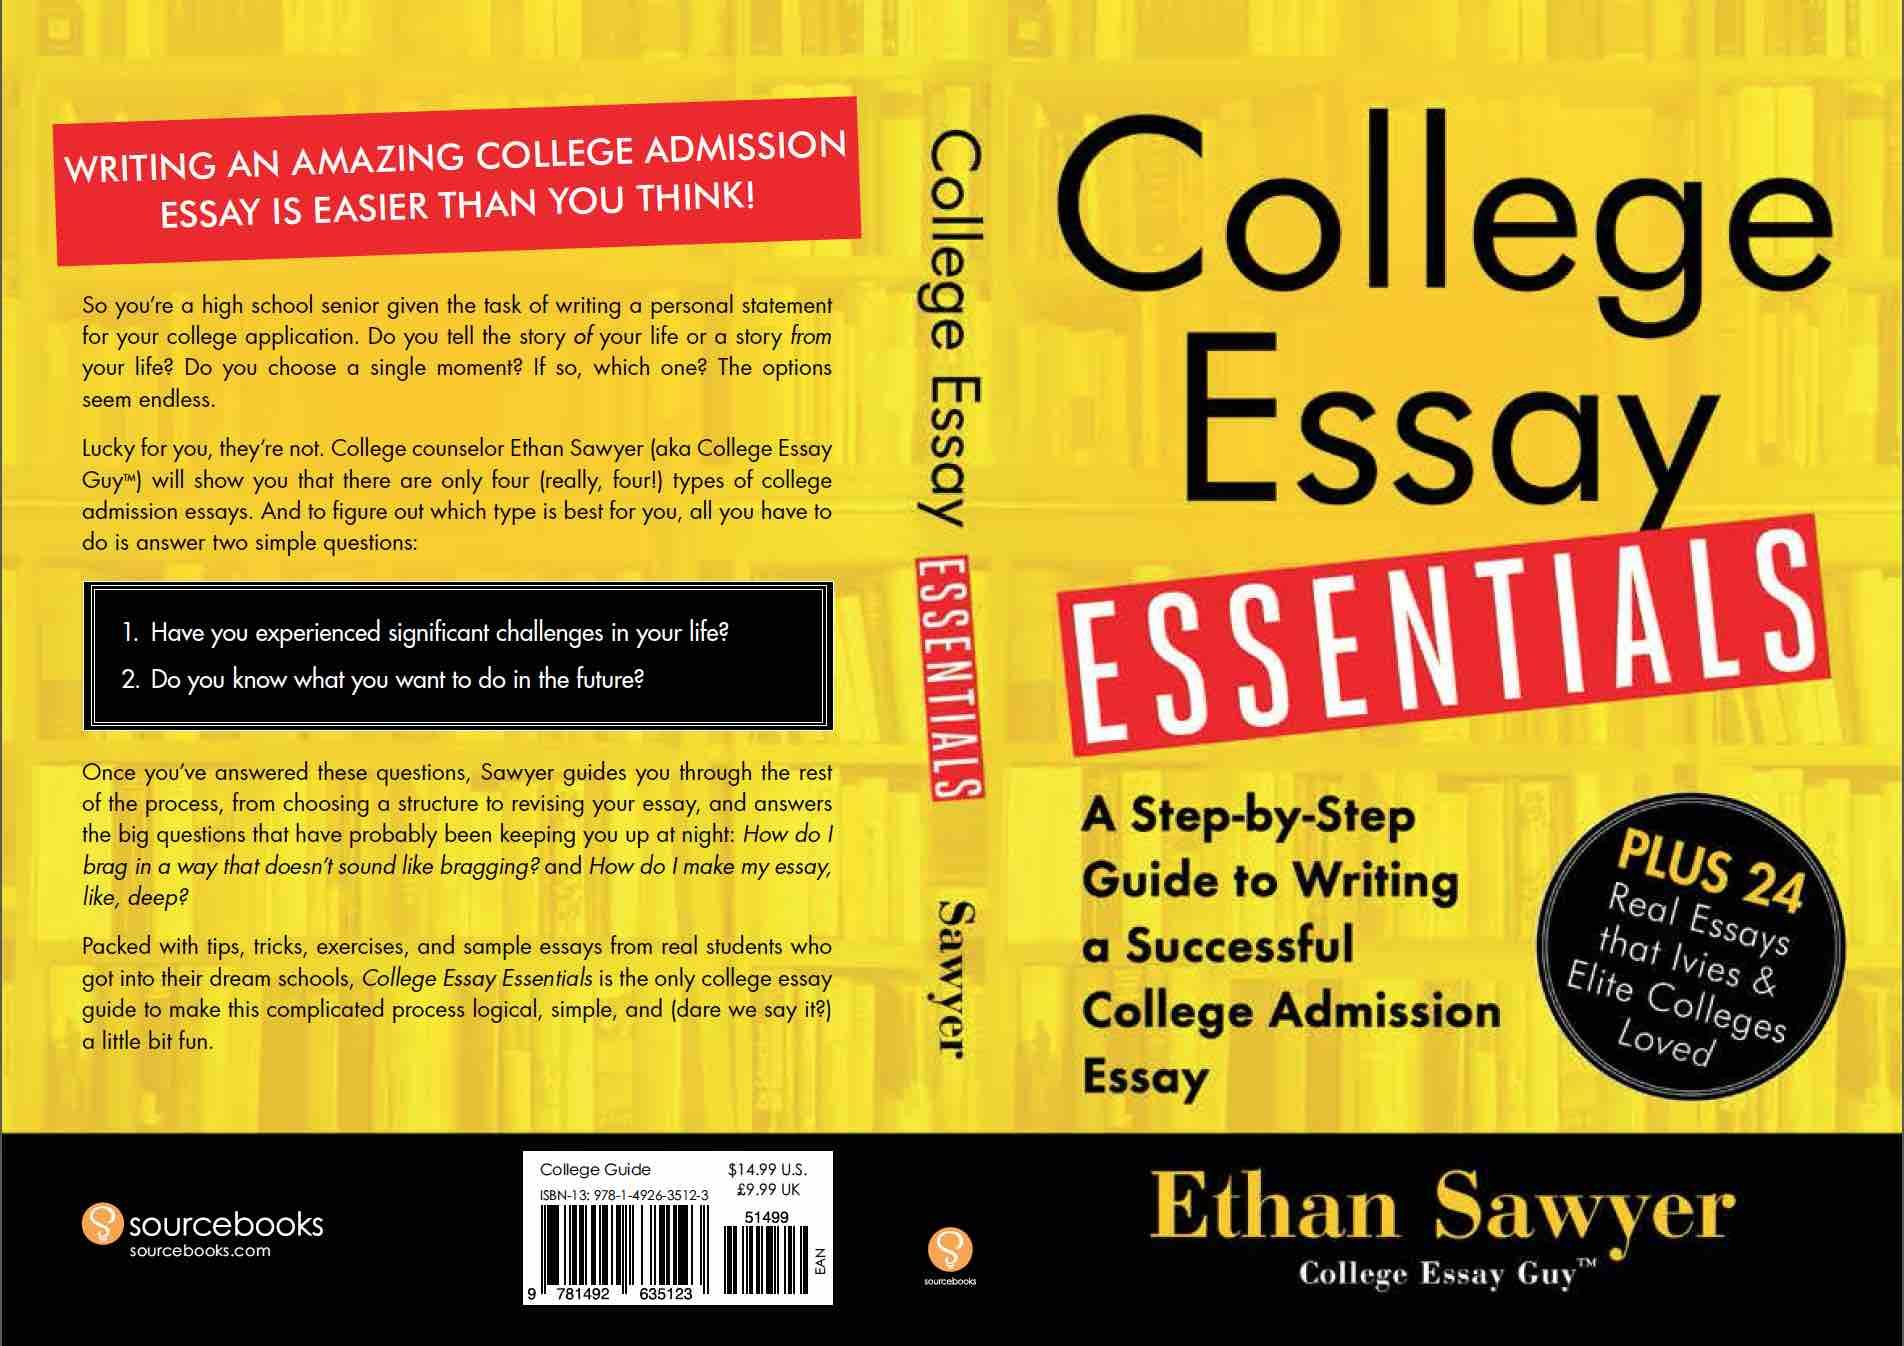 college essay counseling College zoom is the #1 ranked college counseling service in los angeles (yelp) and our 1-on-1 guidance achieves the best success rate nationwide we provide individualized college counseling on every admissions topic, including college planning, college matching, college essays, financial aid, scholarships, and more.